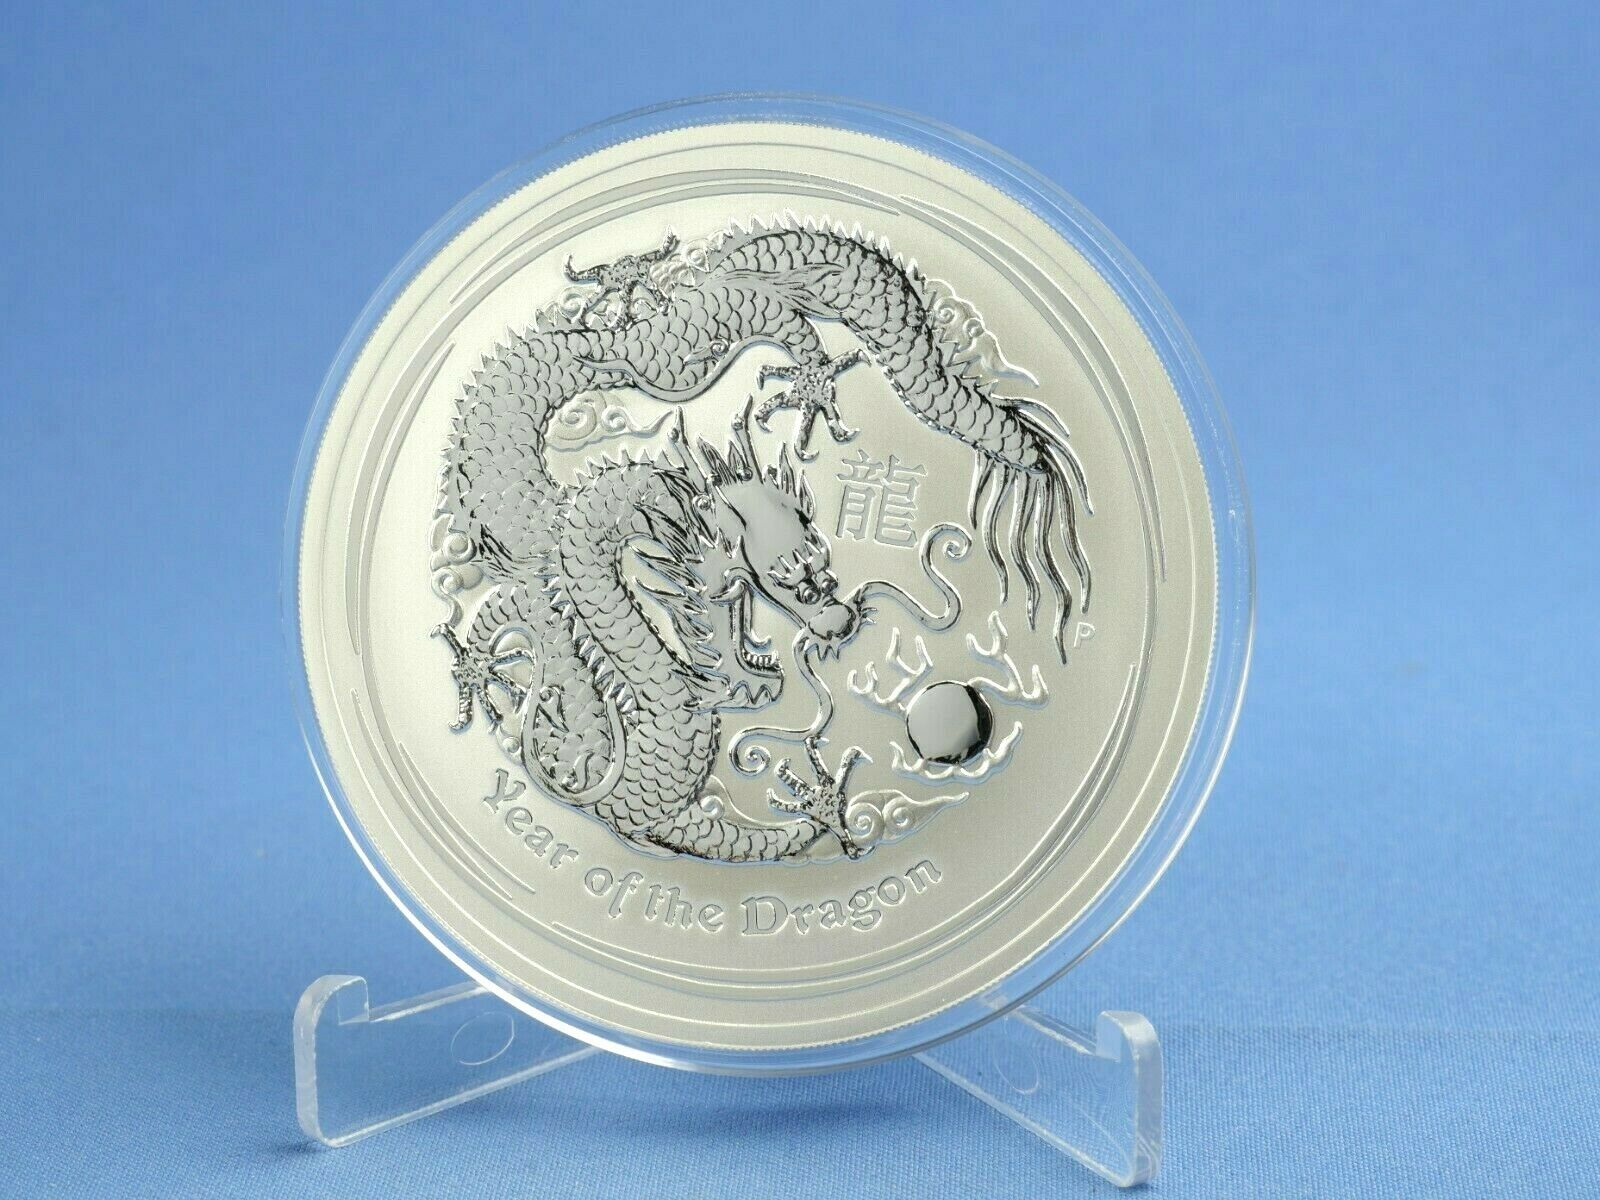 Australien 10 Dollars 2012 Lunar II Year of the Dragon 10 oz 999 Silber st